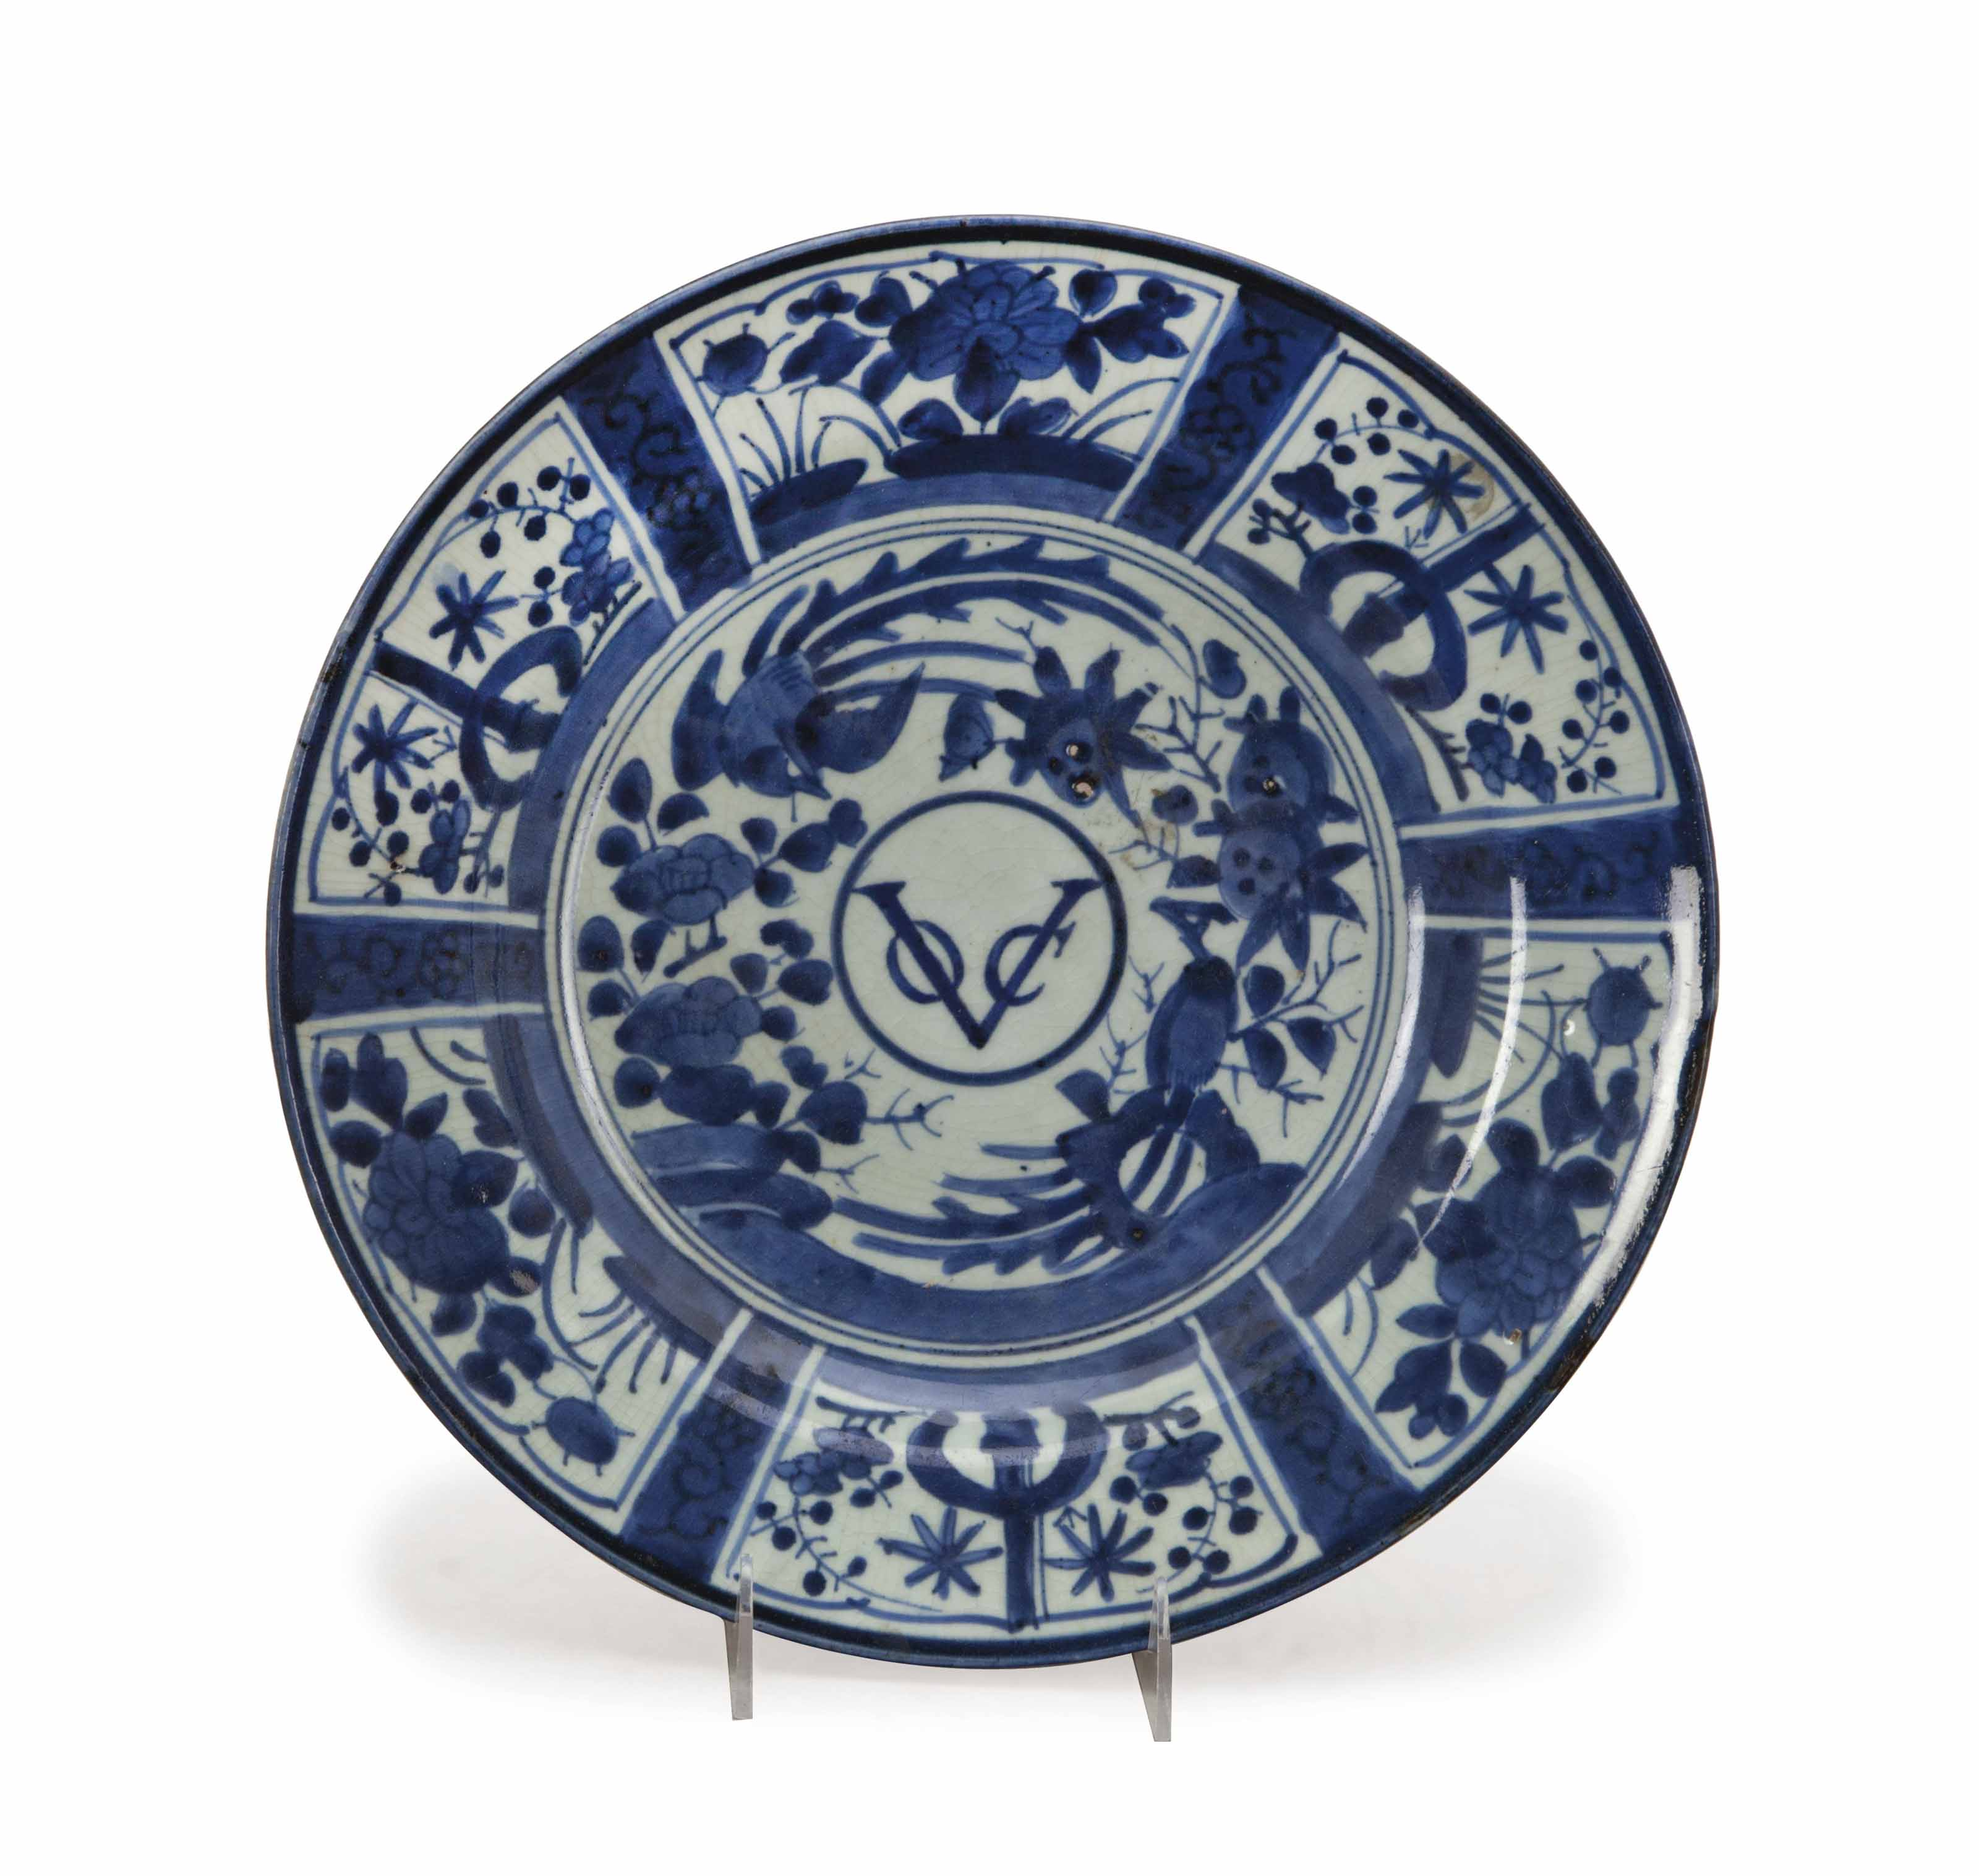 A JAPANESE BLUE AND WHITE 'VOC' CHARGER,